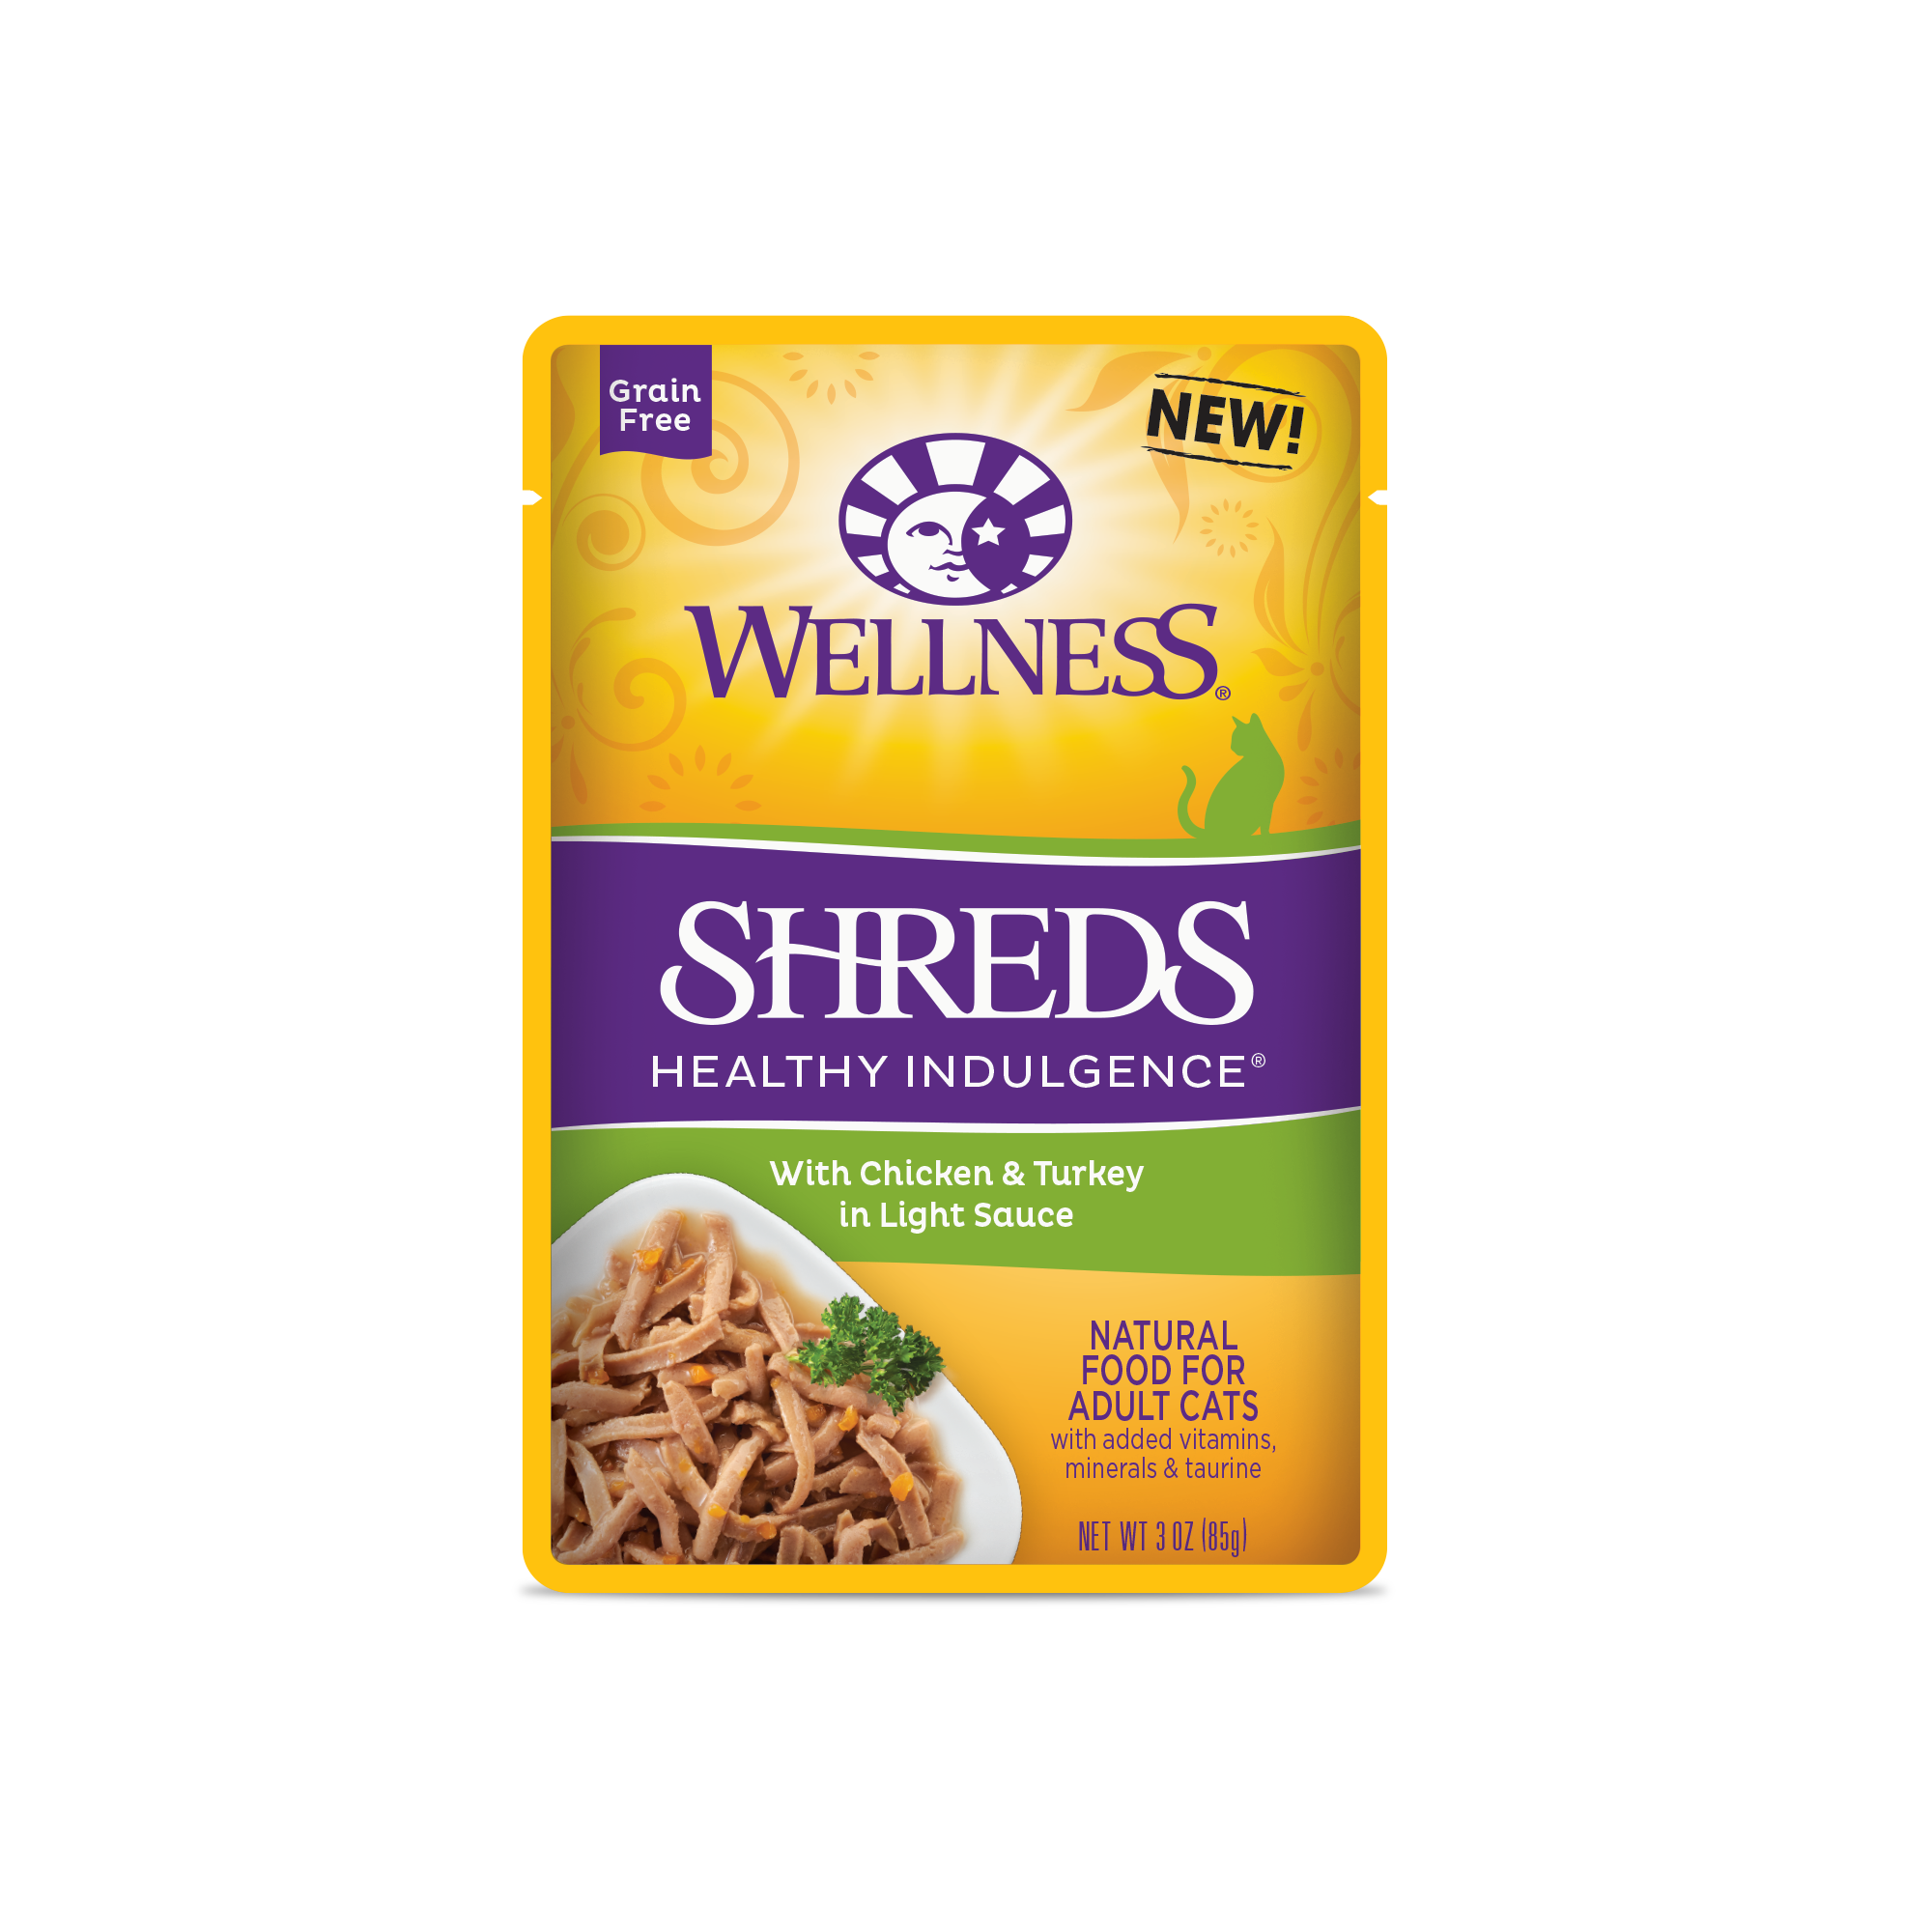 Healthy Indulgence 174 Shreds Chicken Amp Turkey Wellness Pet